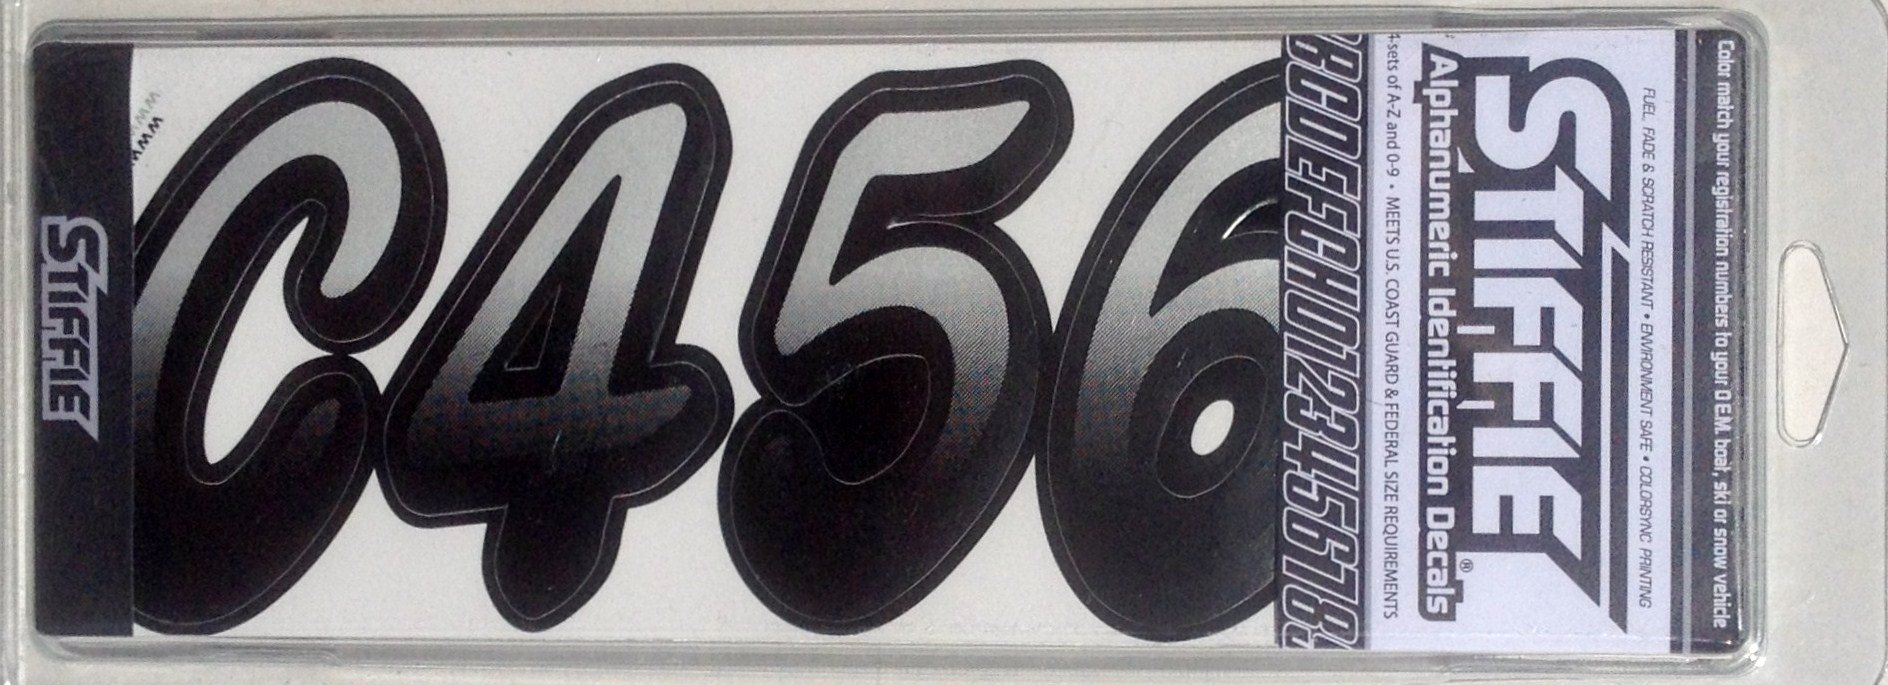 Stiffie Whipline Black//Silver 3 Alpha-Numeric Registration Identification Numbers Stickers Decals for Boats /& Personal Watercraft